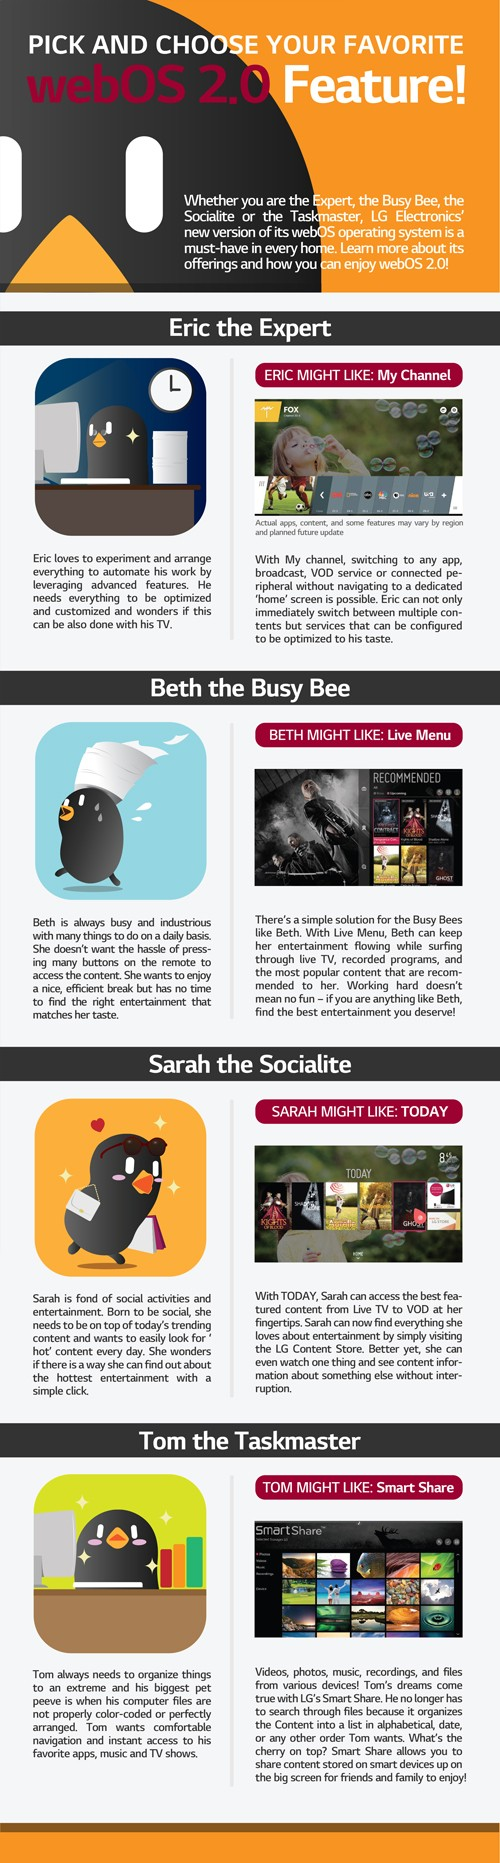 Infographic webOS 2